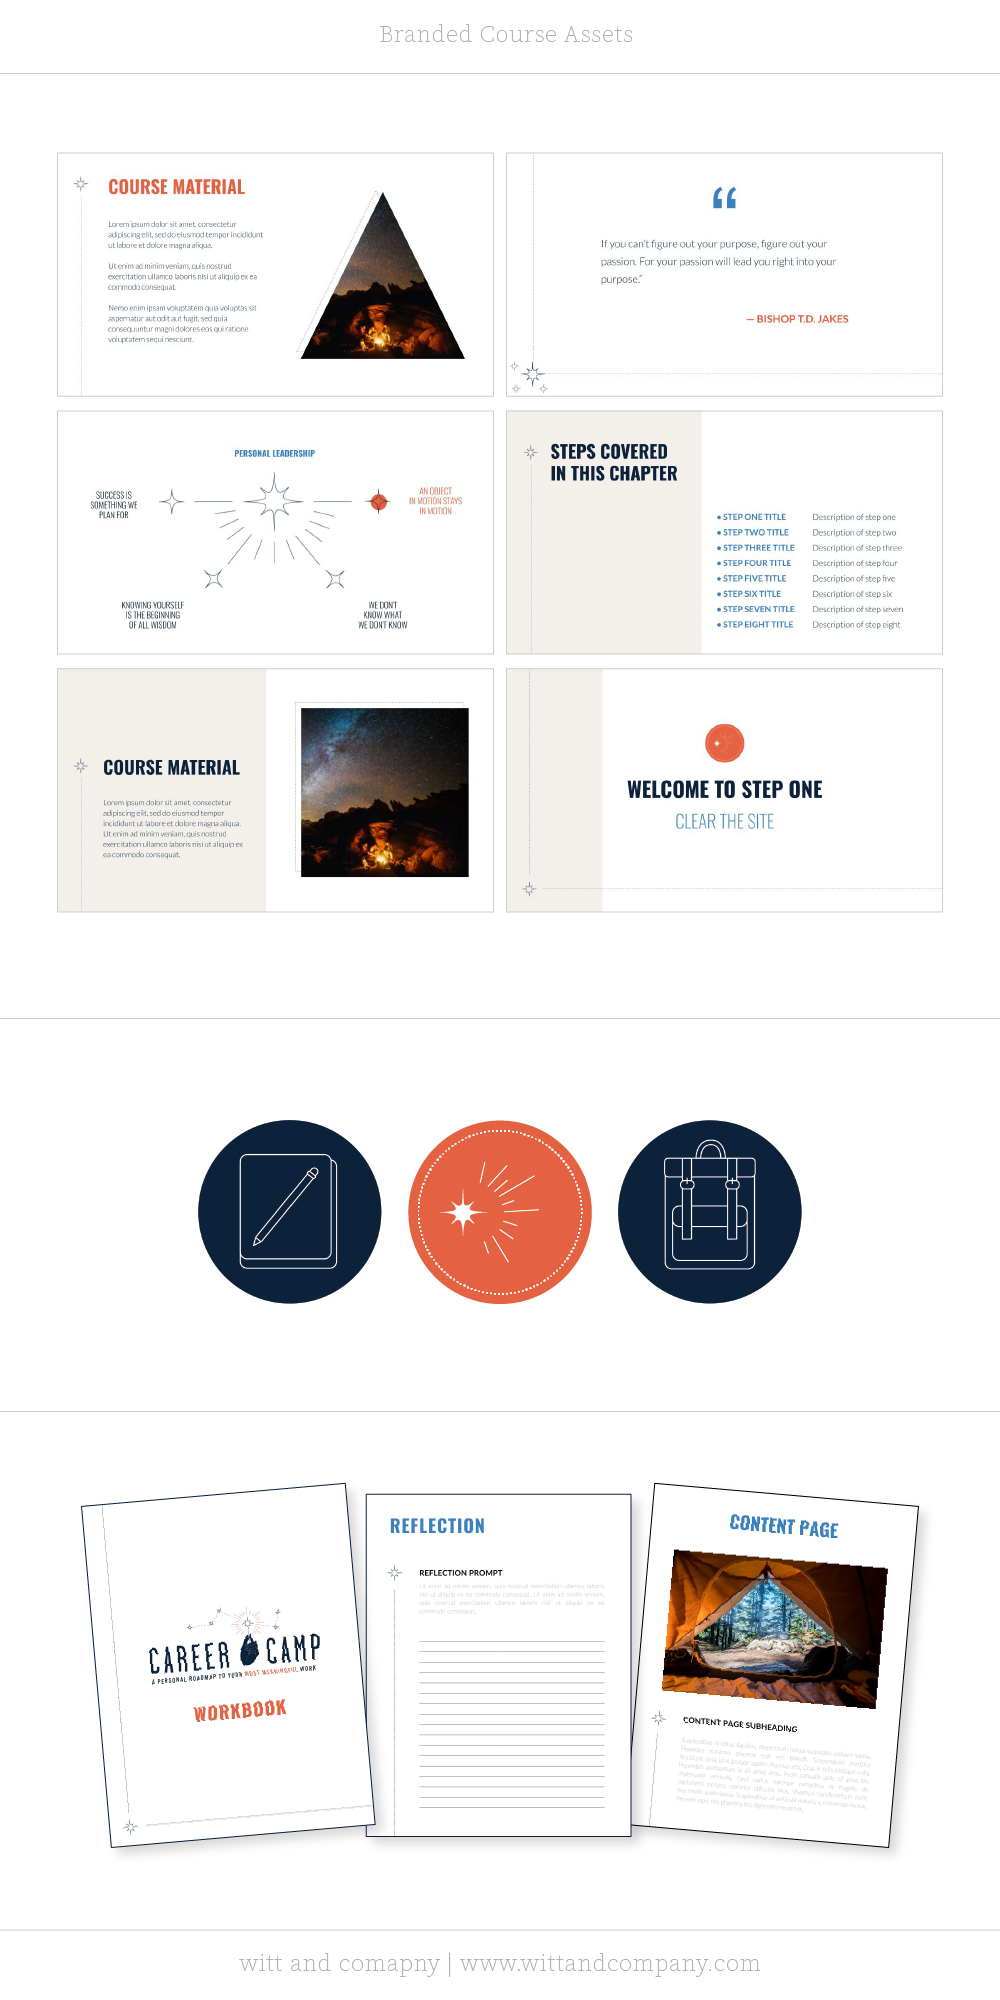 Brand Design for a Course | Witt and Company